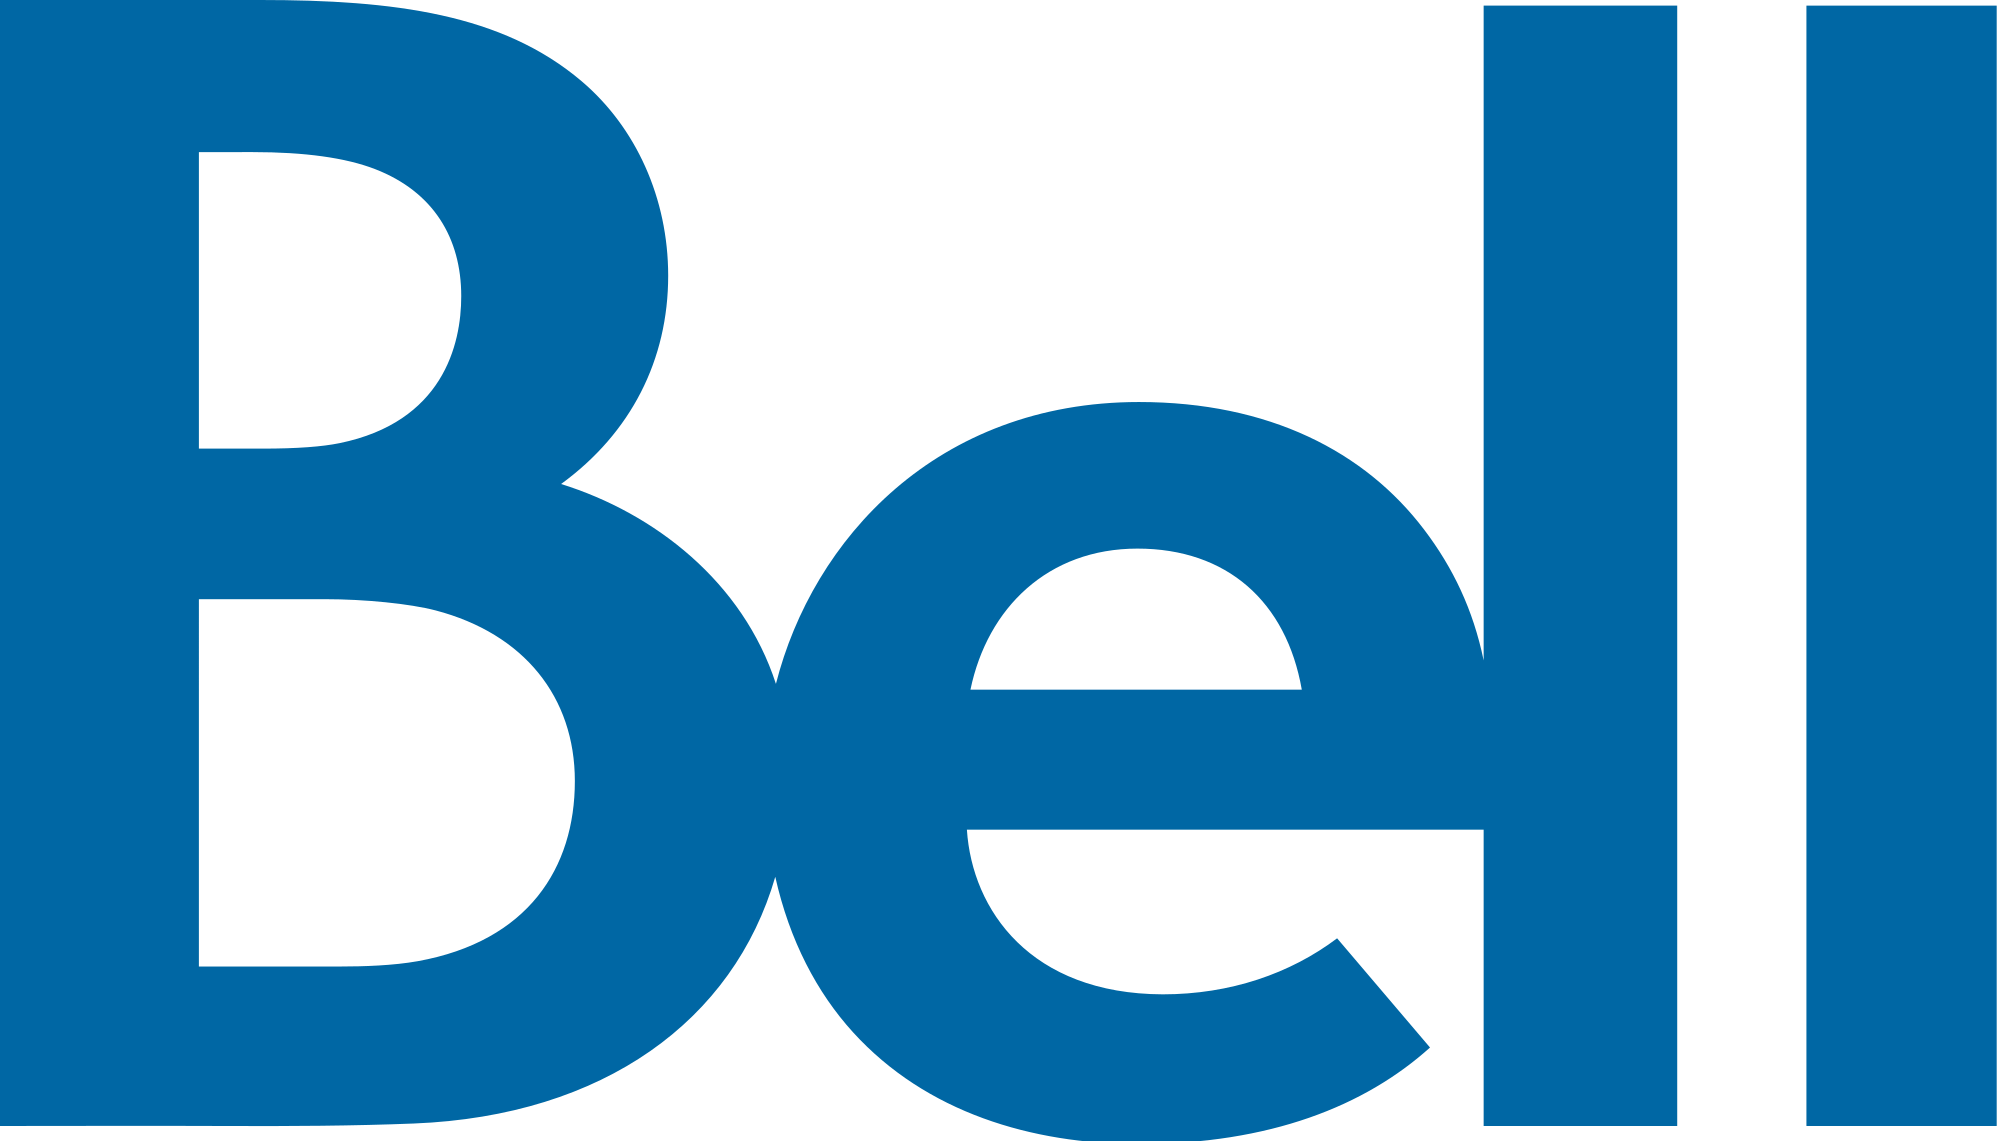 Bell svg logo. File wikimedia commons open